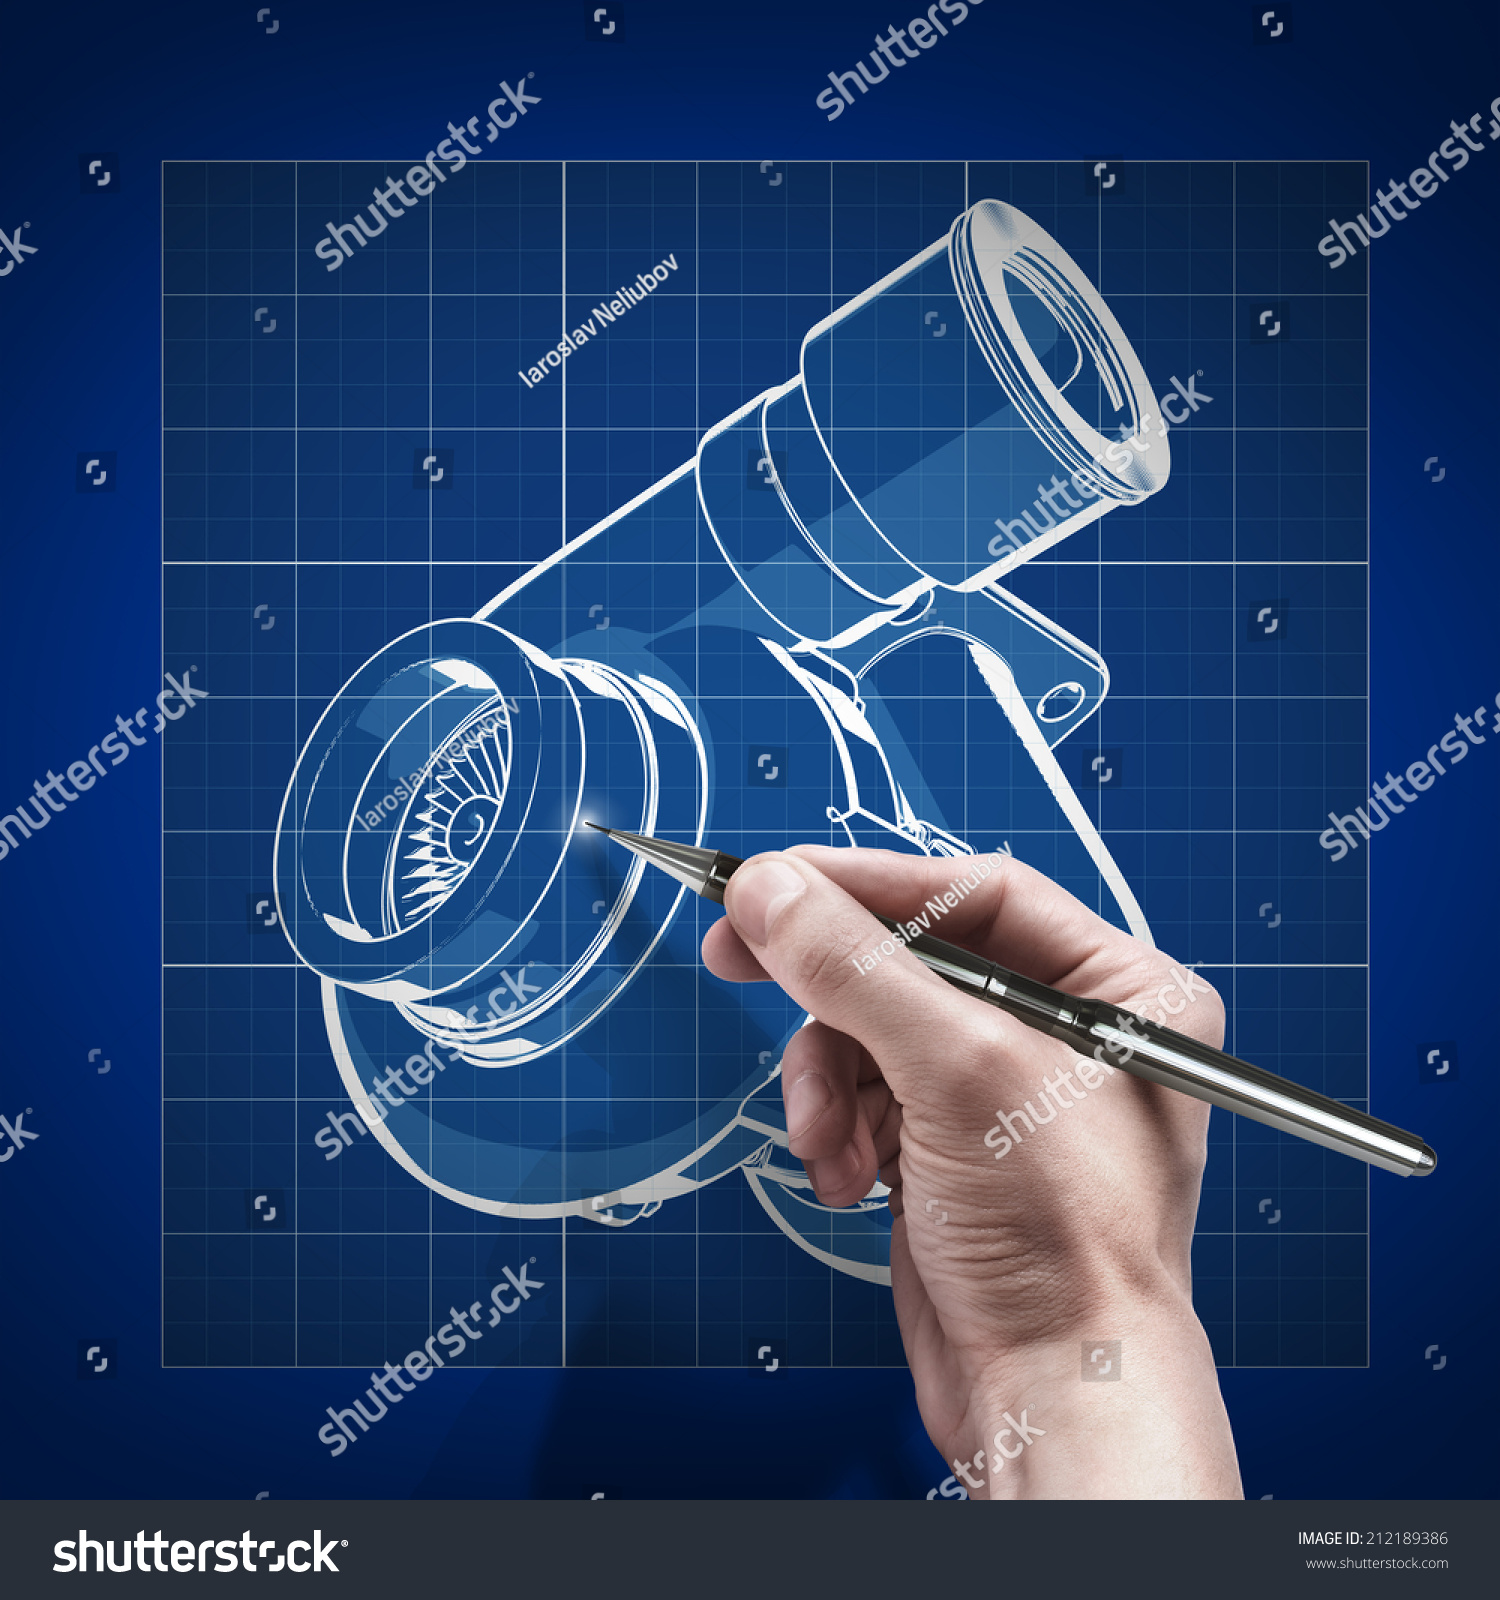 Male Hand With Pen Blueprint Engineer Working On Blue Print Concept Turbocharger Cad Stock